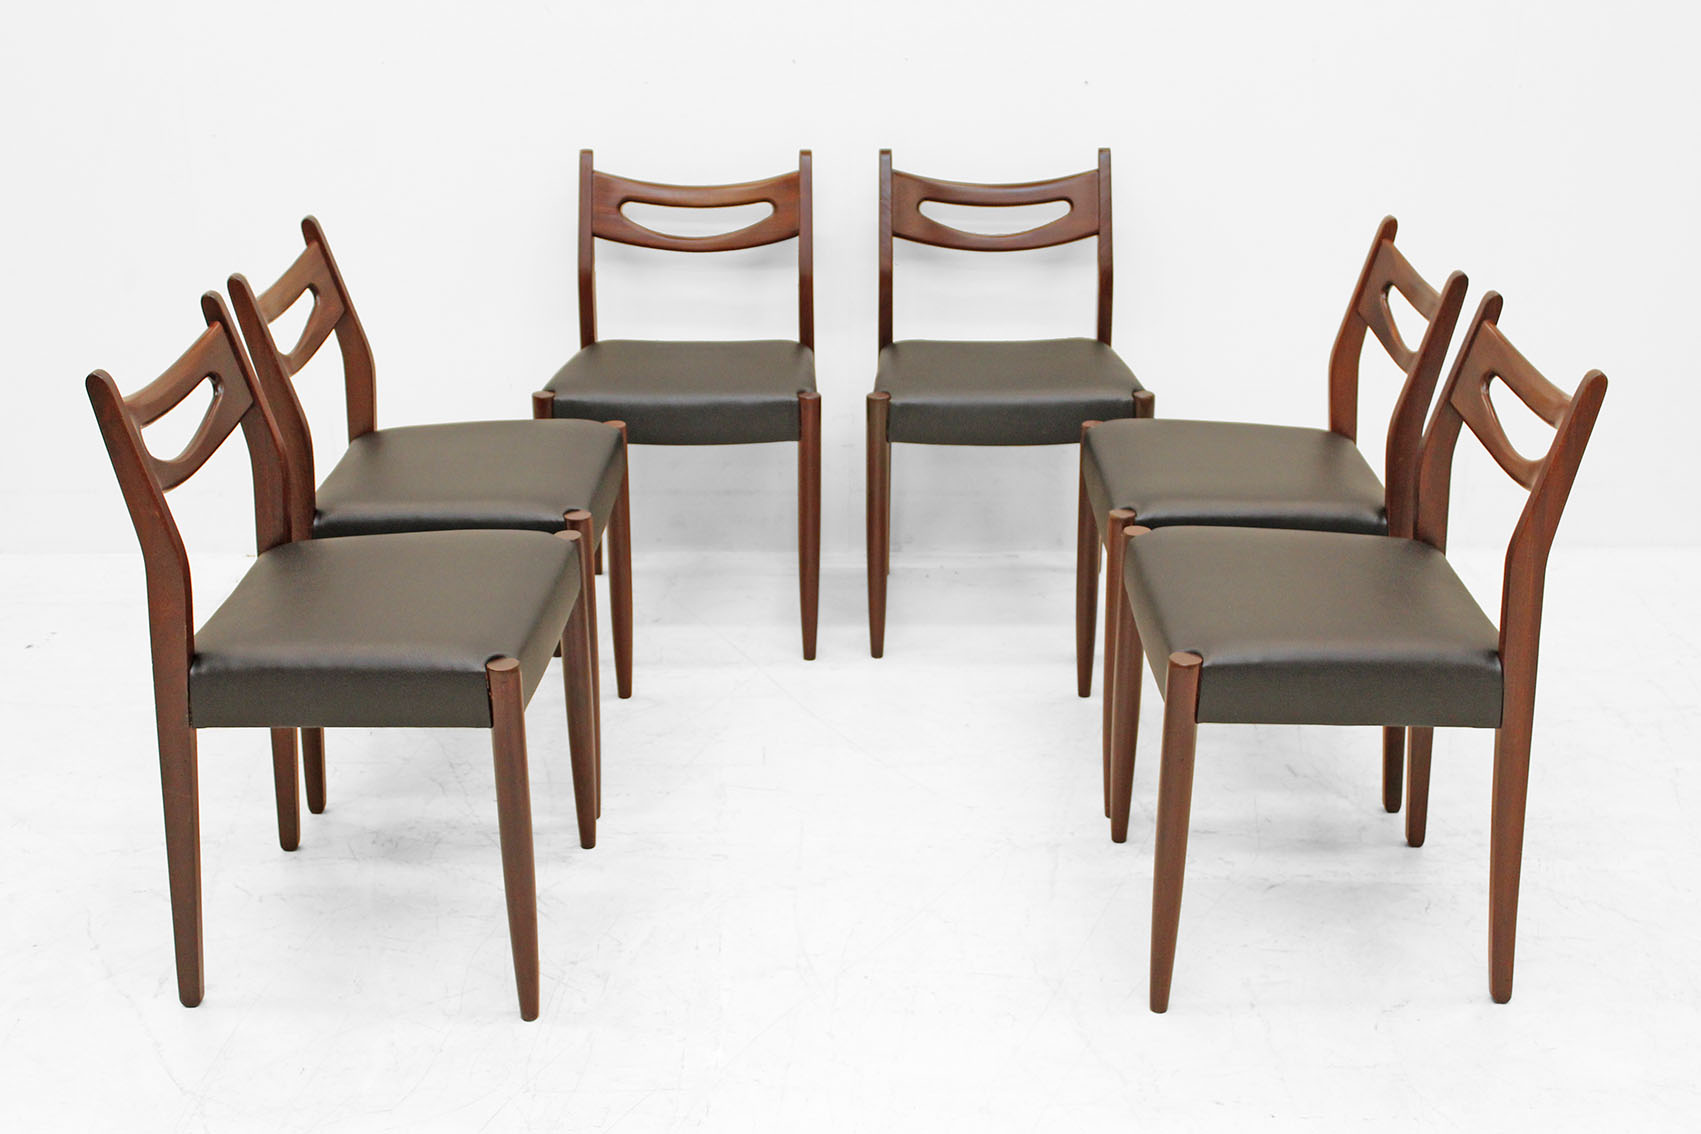 set of six chairs by VP (Van pelt)